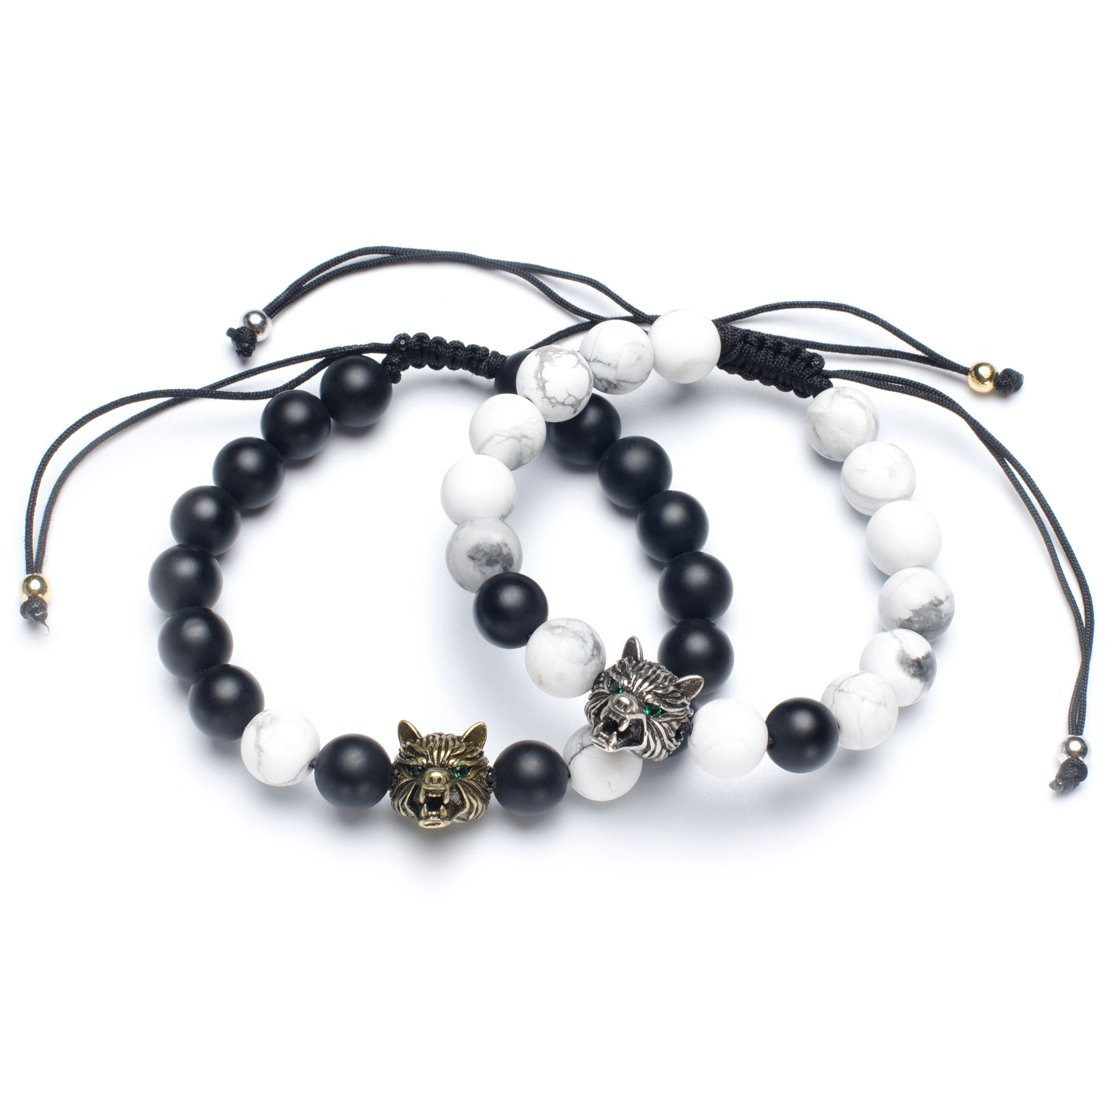 Karseer Yin Yang Matching Distance Bracelet Retro Viking Wolf Head Charm Black Matte Onyx and White Howlite 8mm Stone Beads Bracelets Friendship Relations Bracelet Set for Guys Couples His and Hers